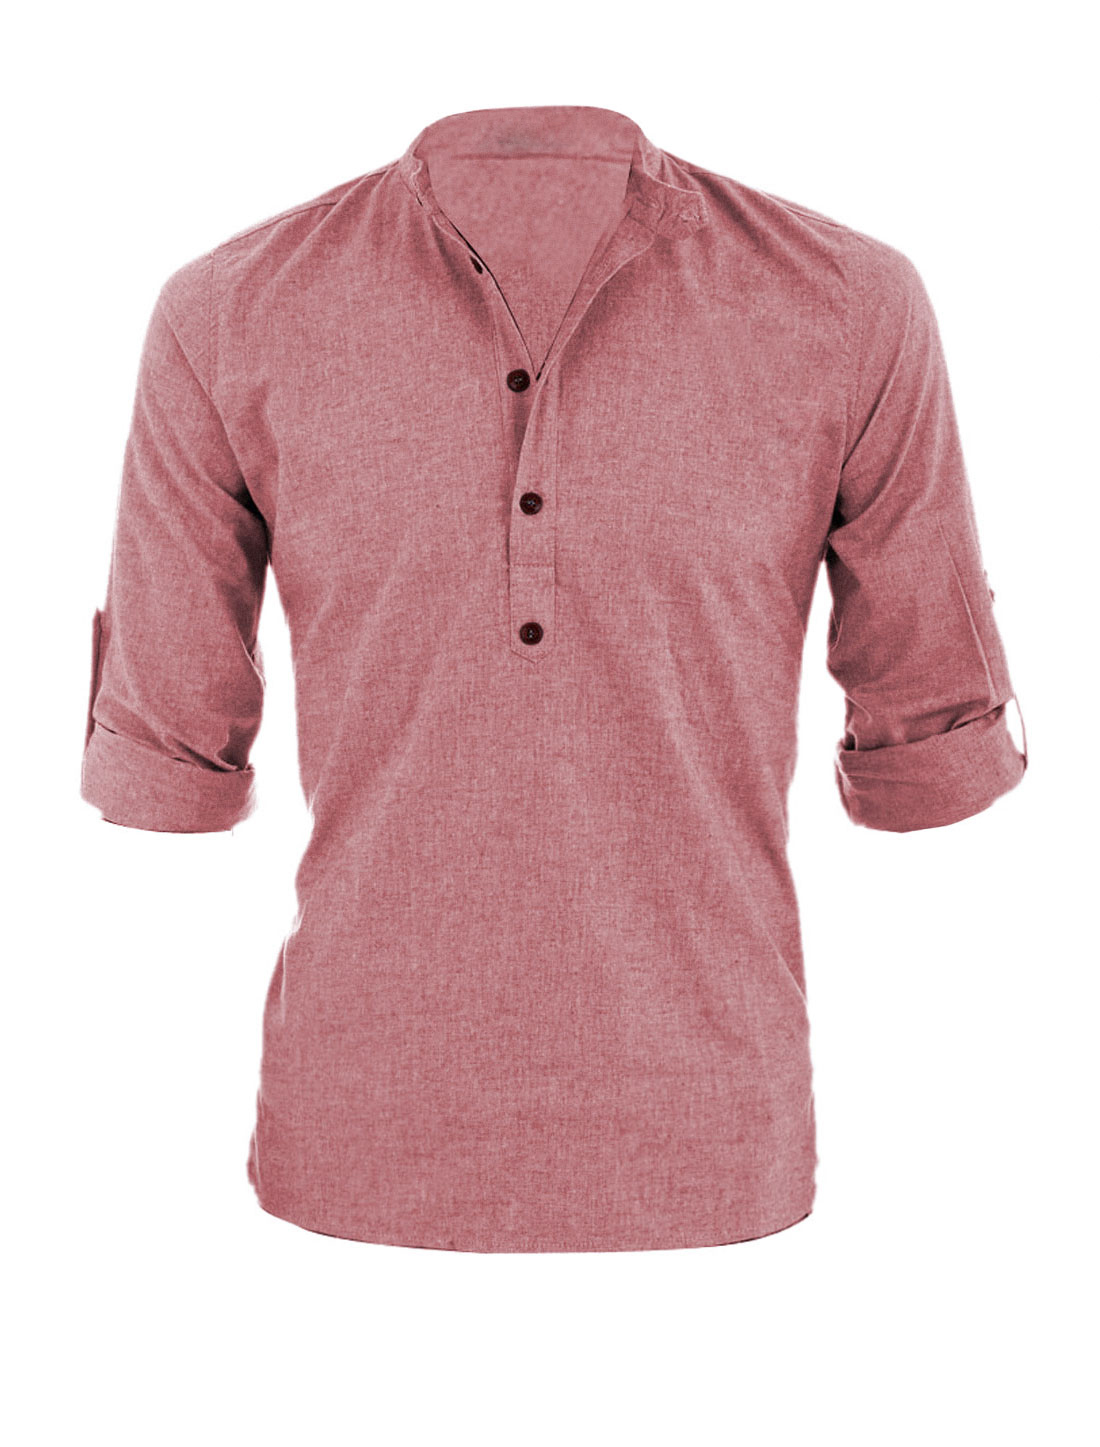 Men Half Button Placket Roll Up Sleeves Heathered Henley Shirt Red S